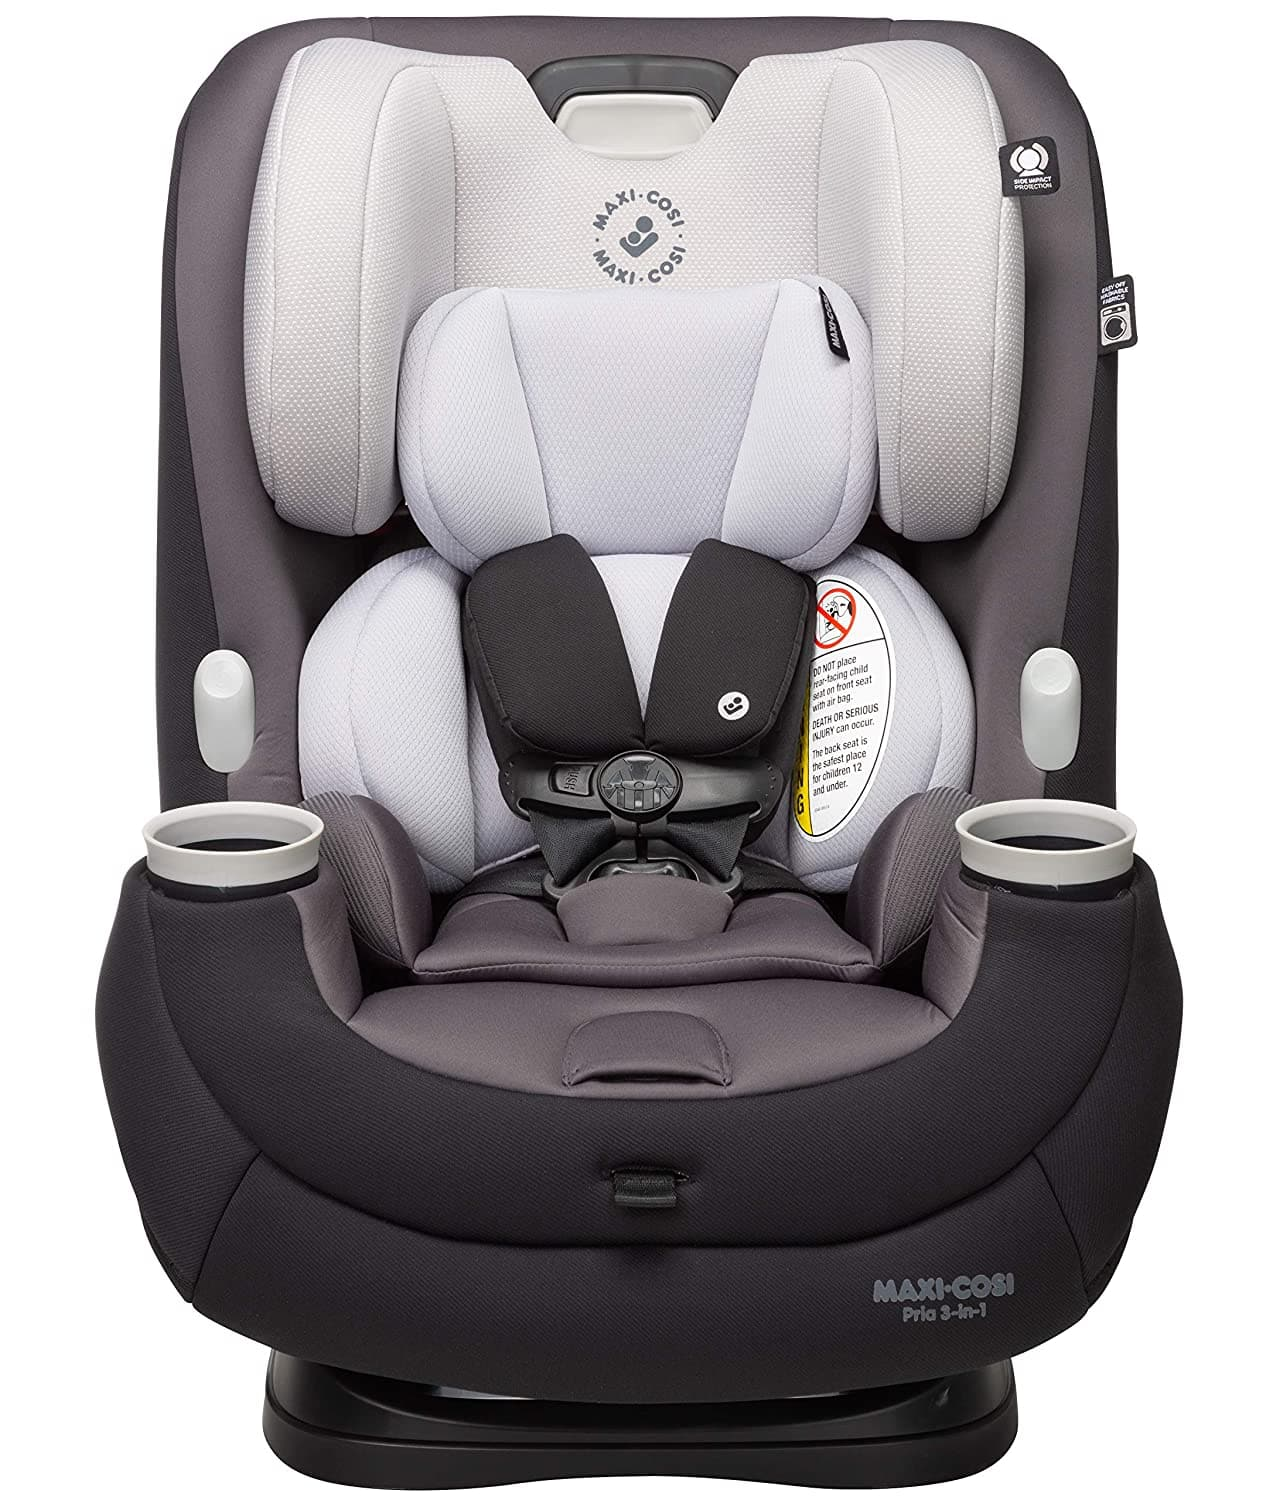 Pria 3-in-1 Convertible Car Seat - Amazon at $246.49